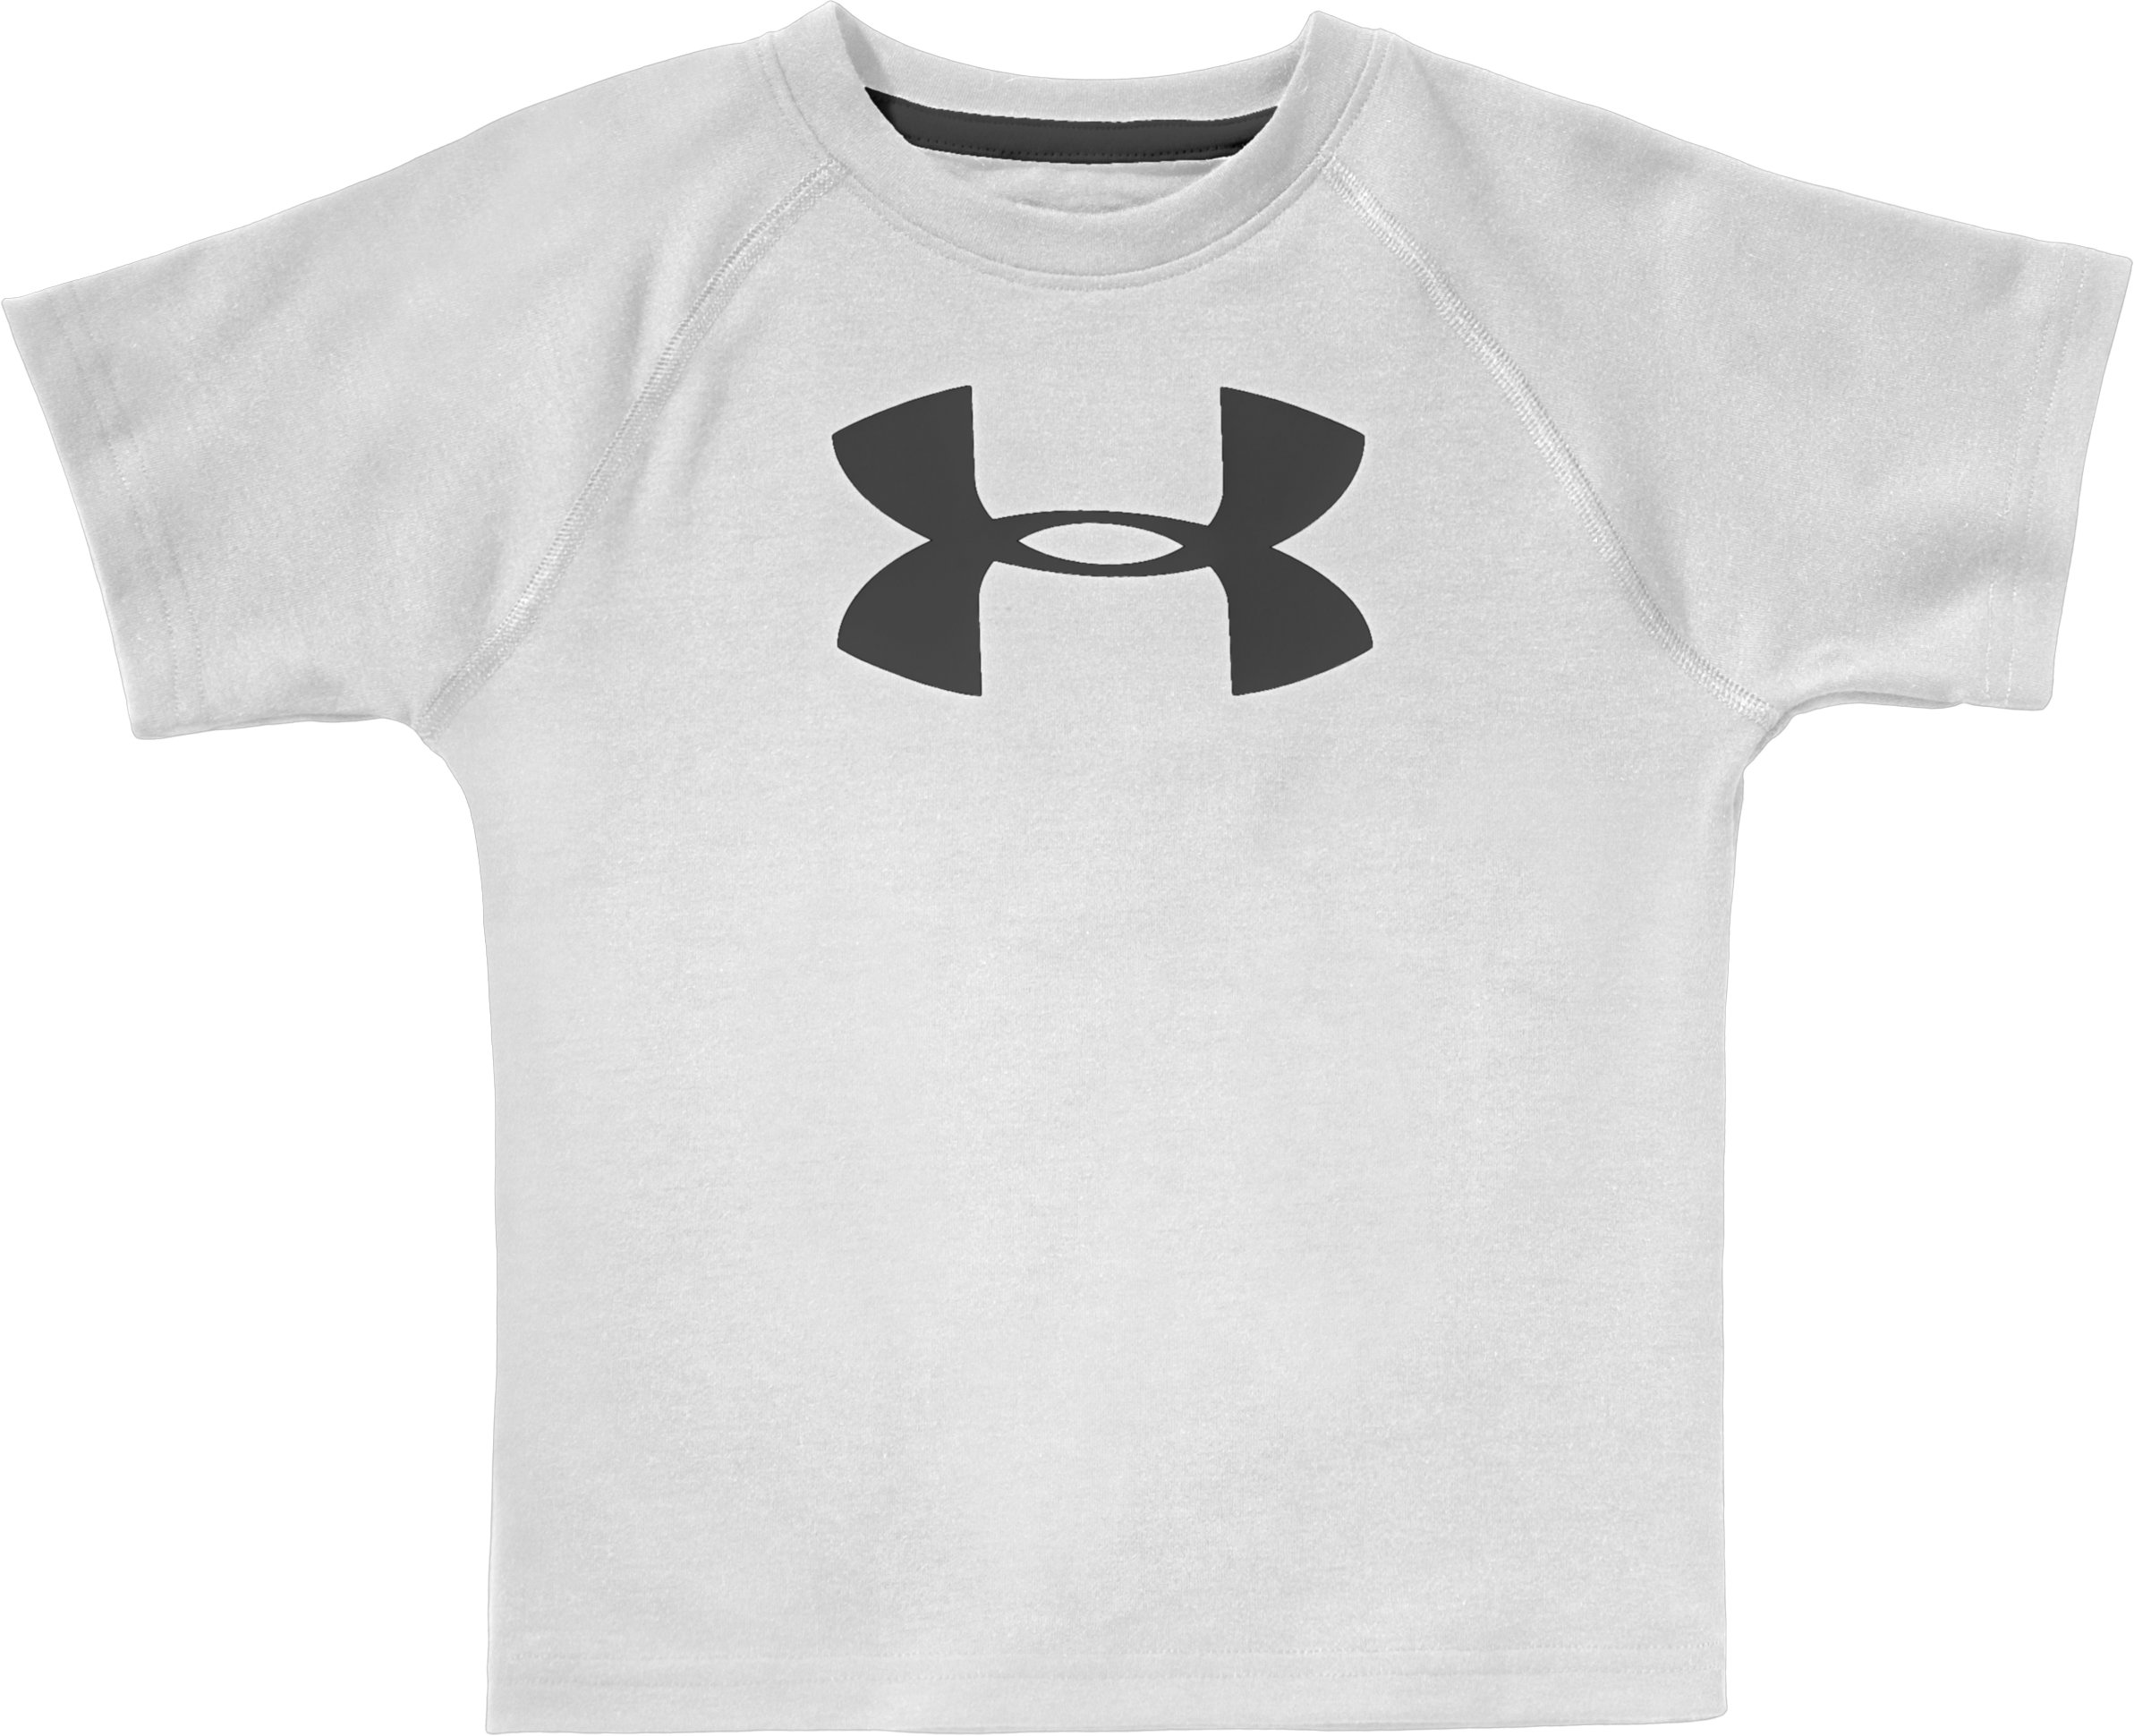 Boys' 4-7 UA Tech™ Big Logo Short Sleeve T-Shirt, White, zoomed image